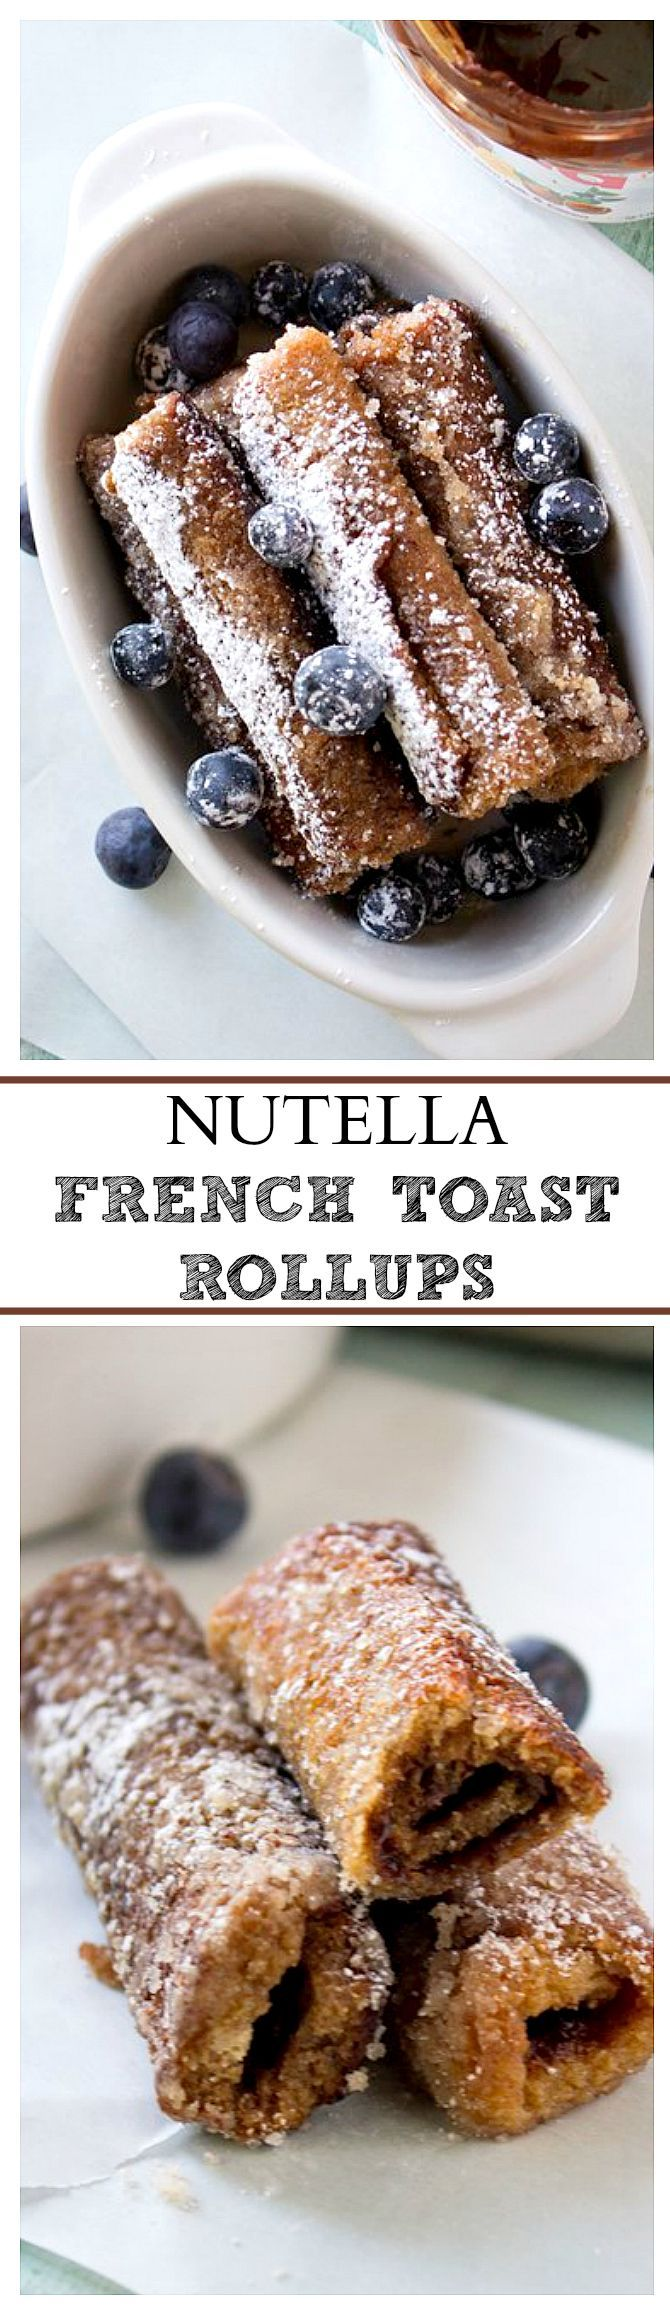 25+ Best Ideas About Nutella French Toast On Pinterest Nutella Toast  Recipes, French Toast